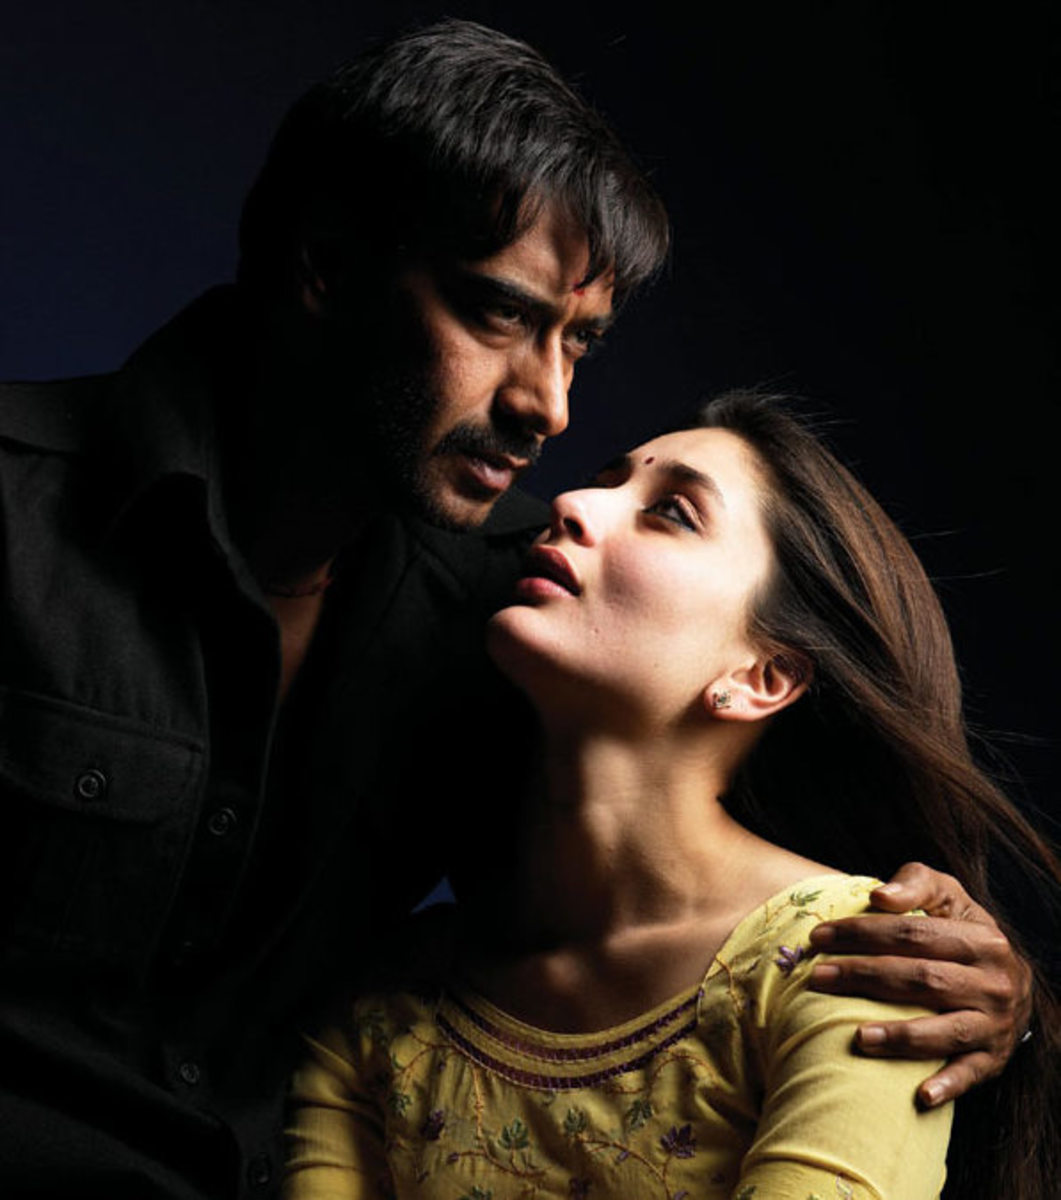 Ajay Devgan and Kareena Kapoor in Omkara.